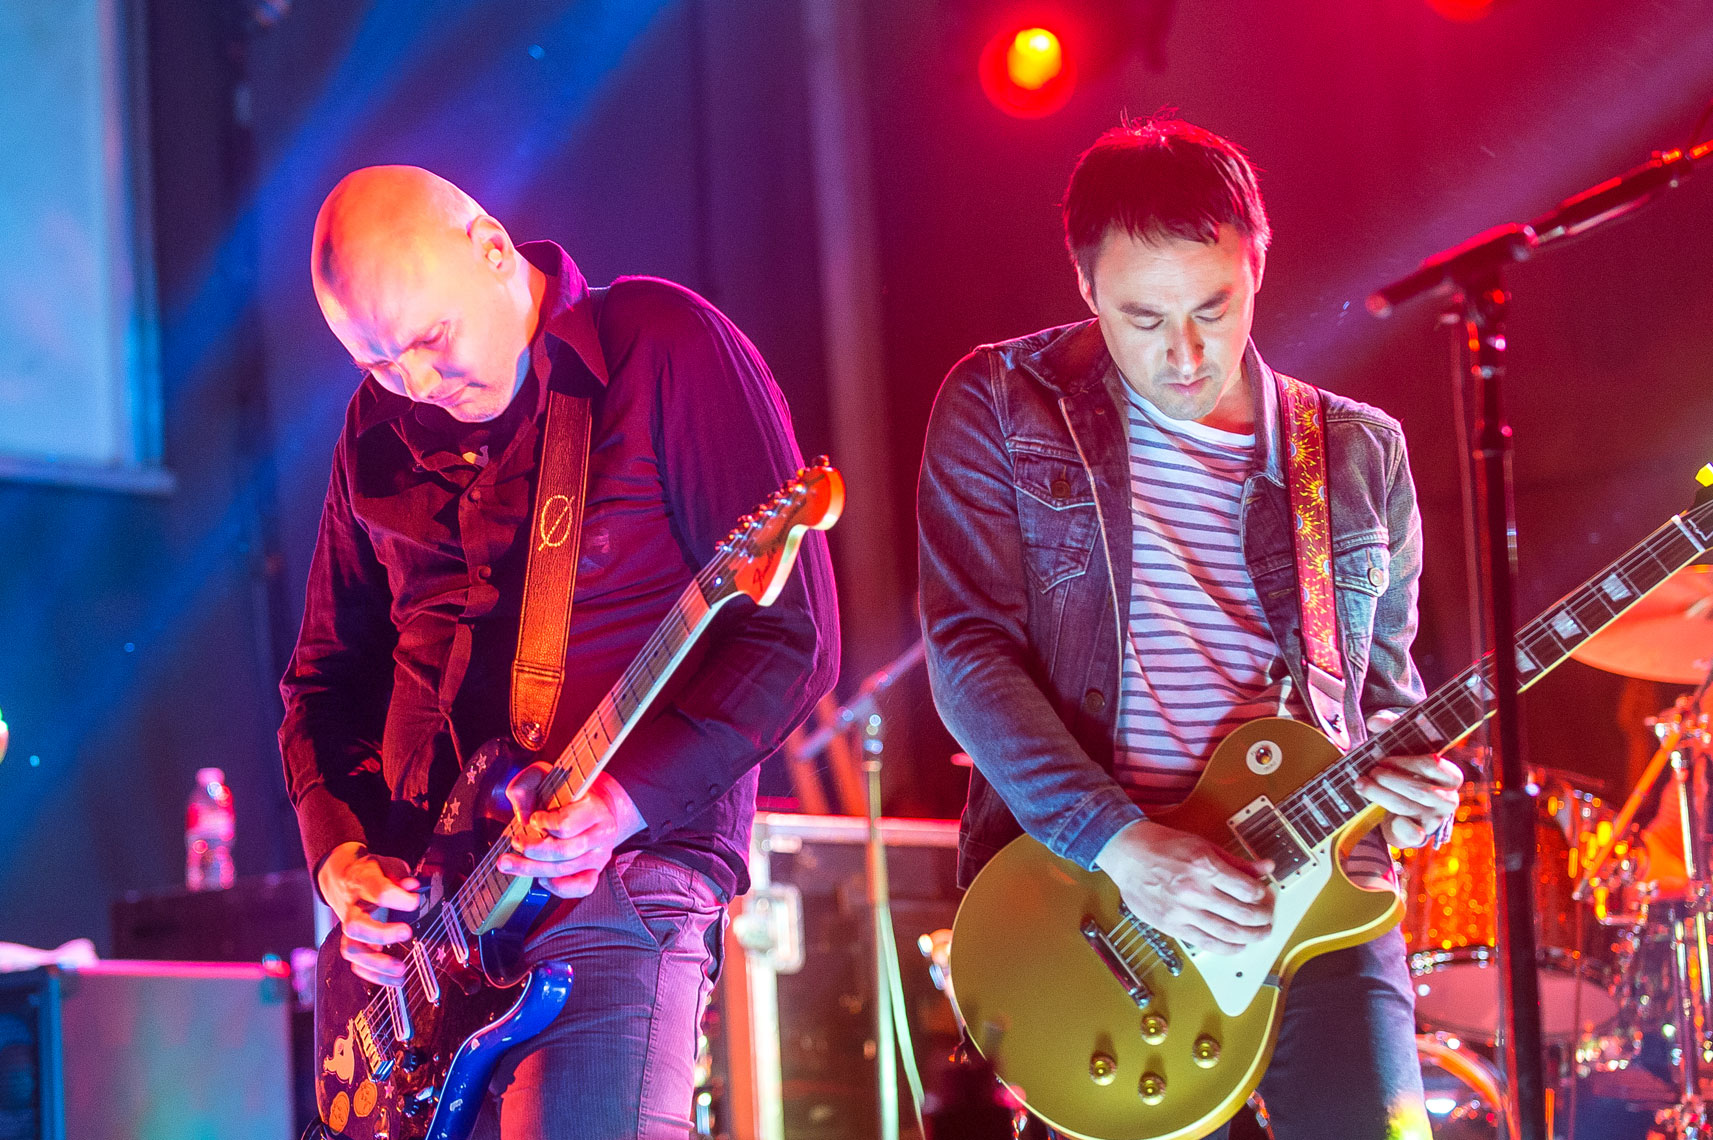 The-Smashing-Pumpkins-performs-at-The-Red-Bull-Sound-Select-Party-during-SXSW-2013-on-Saturday,-March-16-7